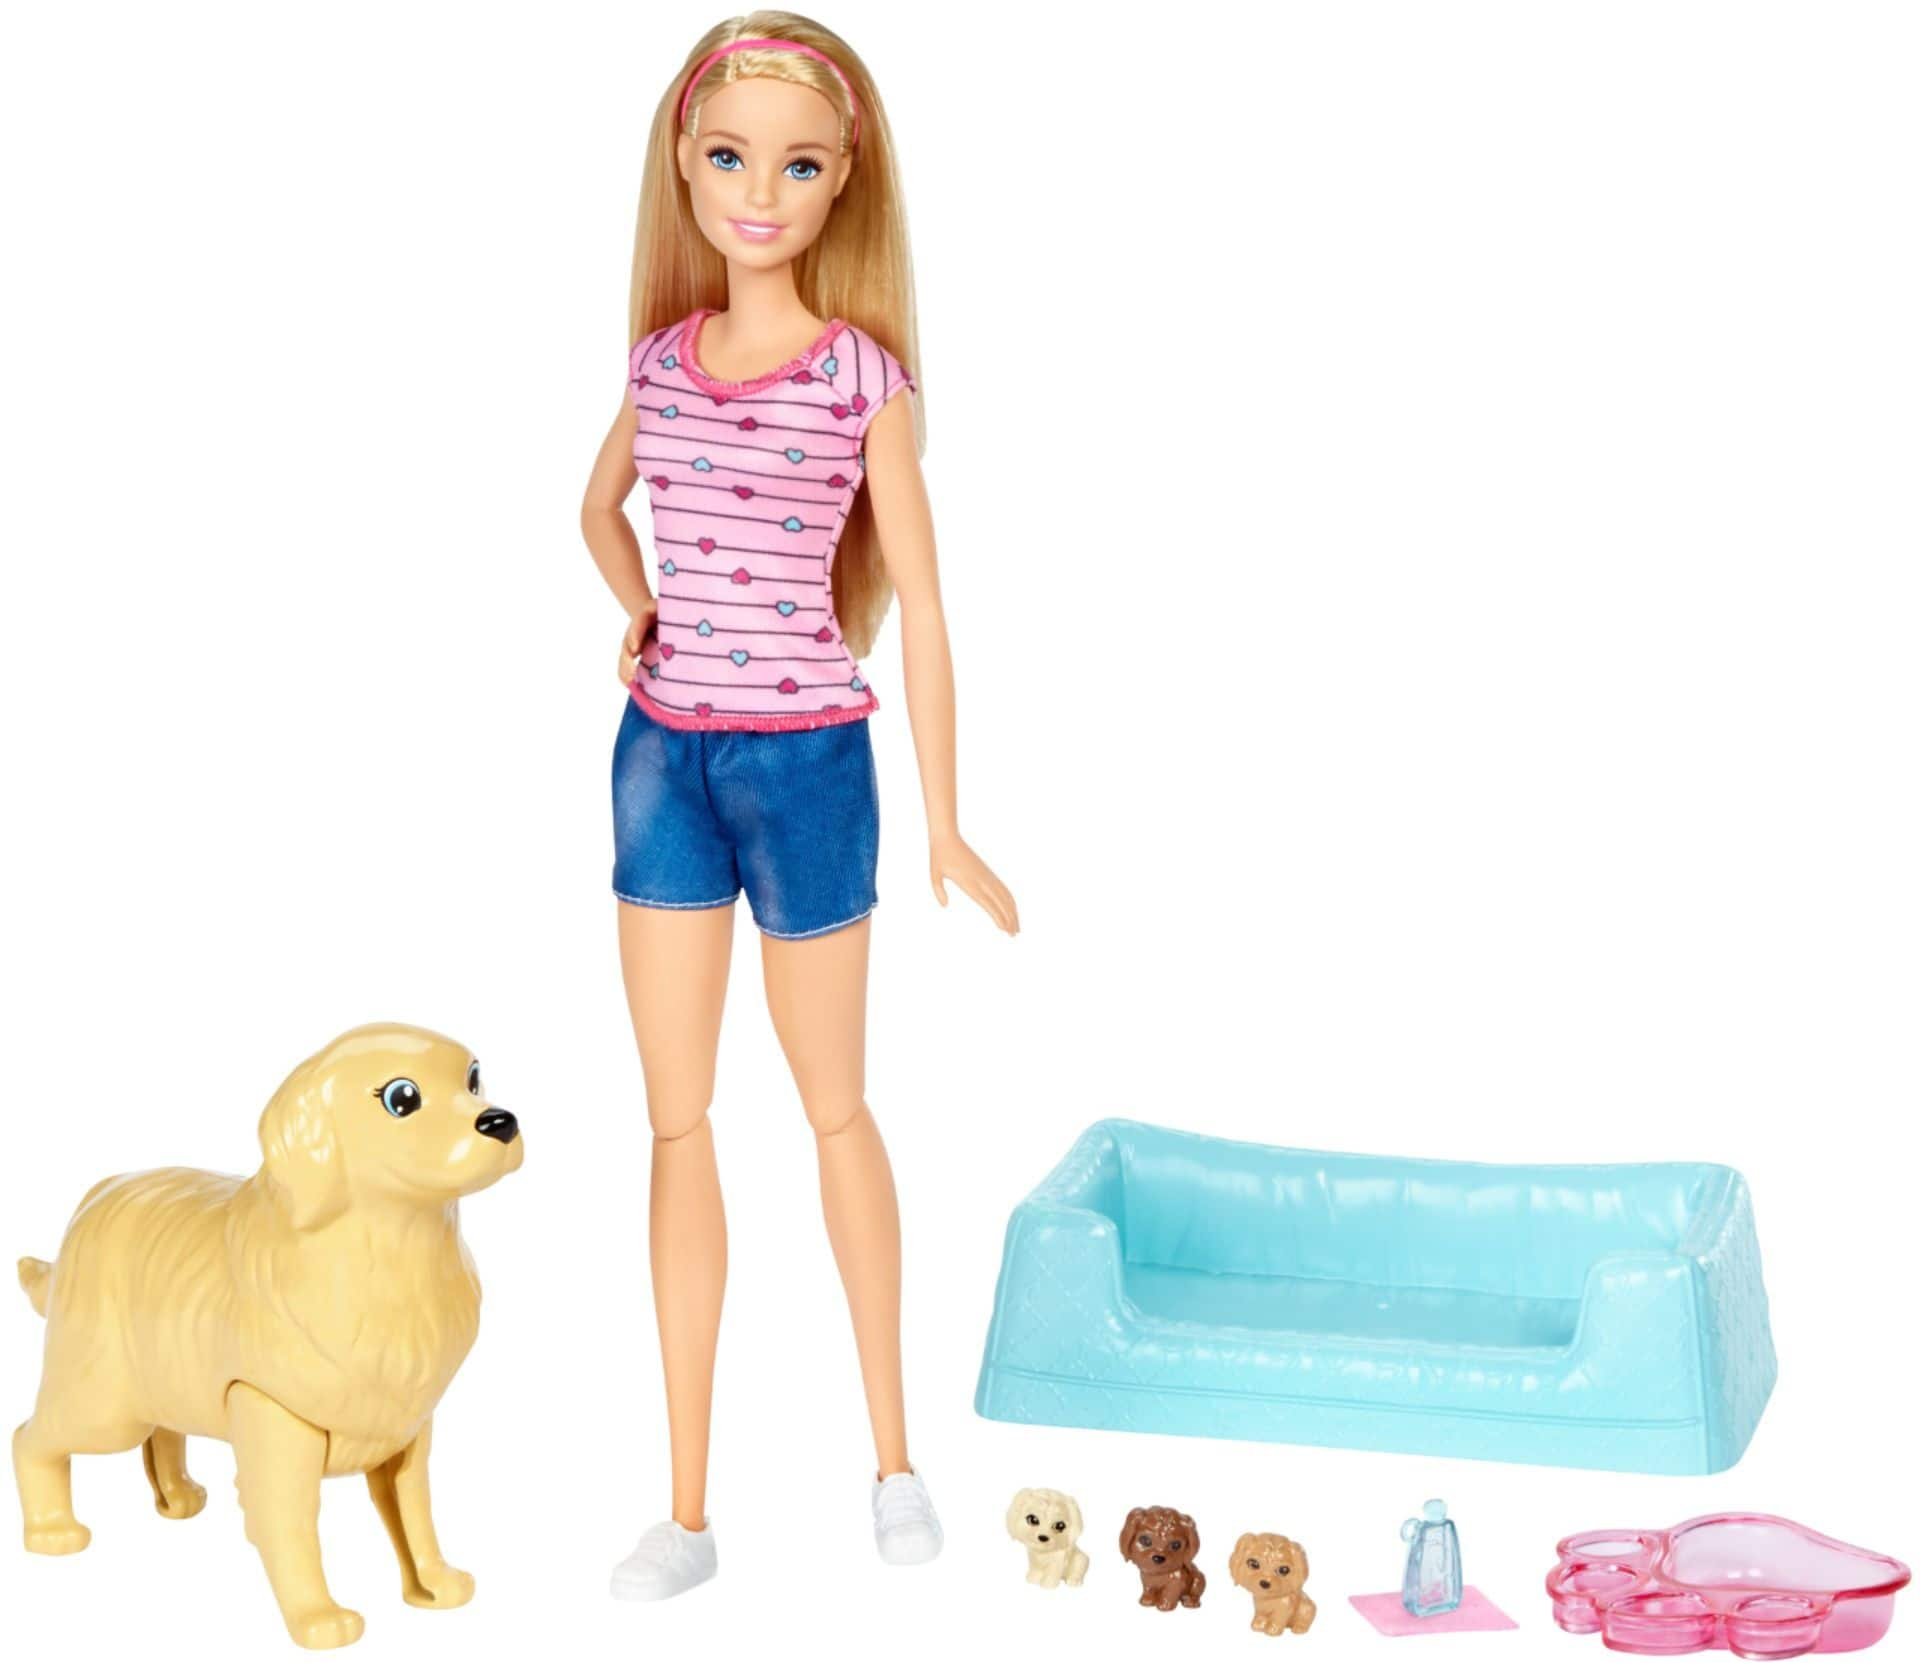 Barbie Newborn Pups Doll & Pets (Various Styles) $8.50 at Best Buy